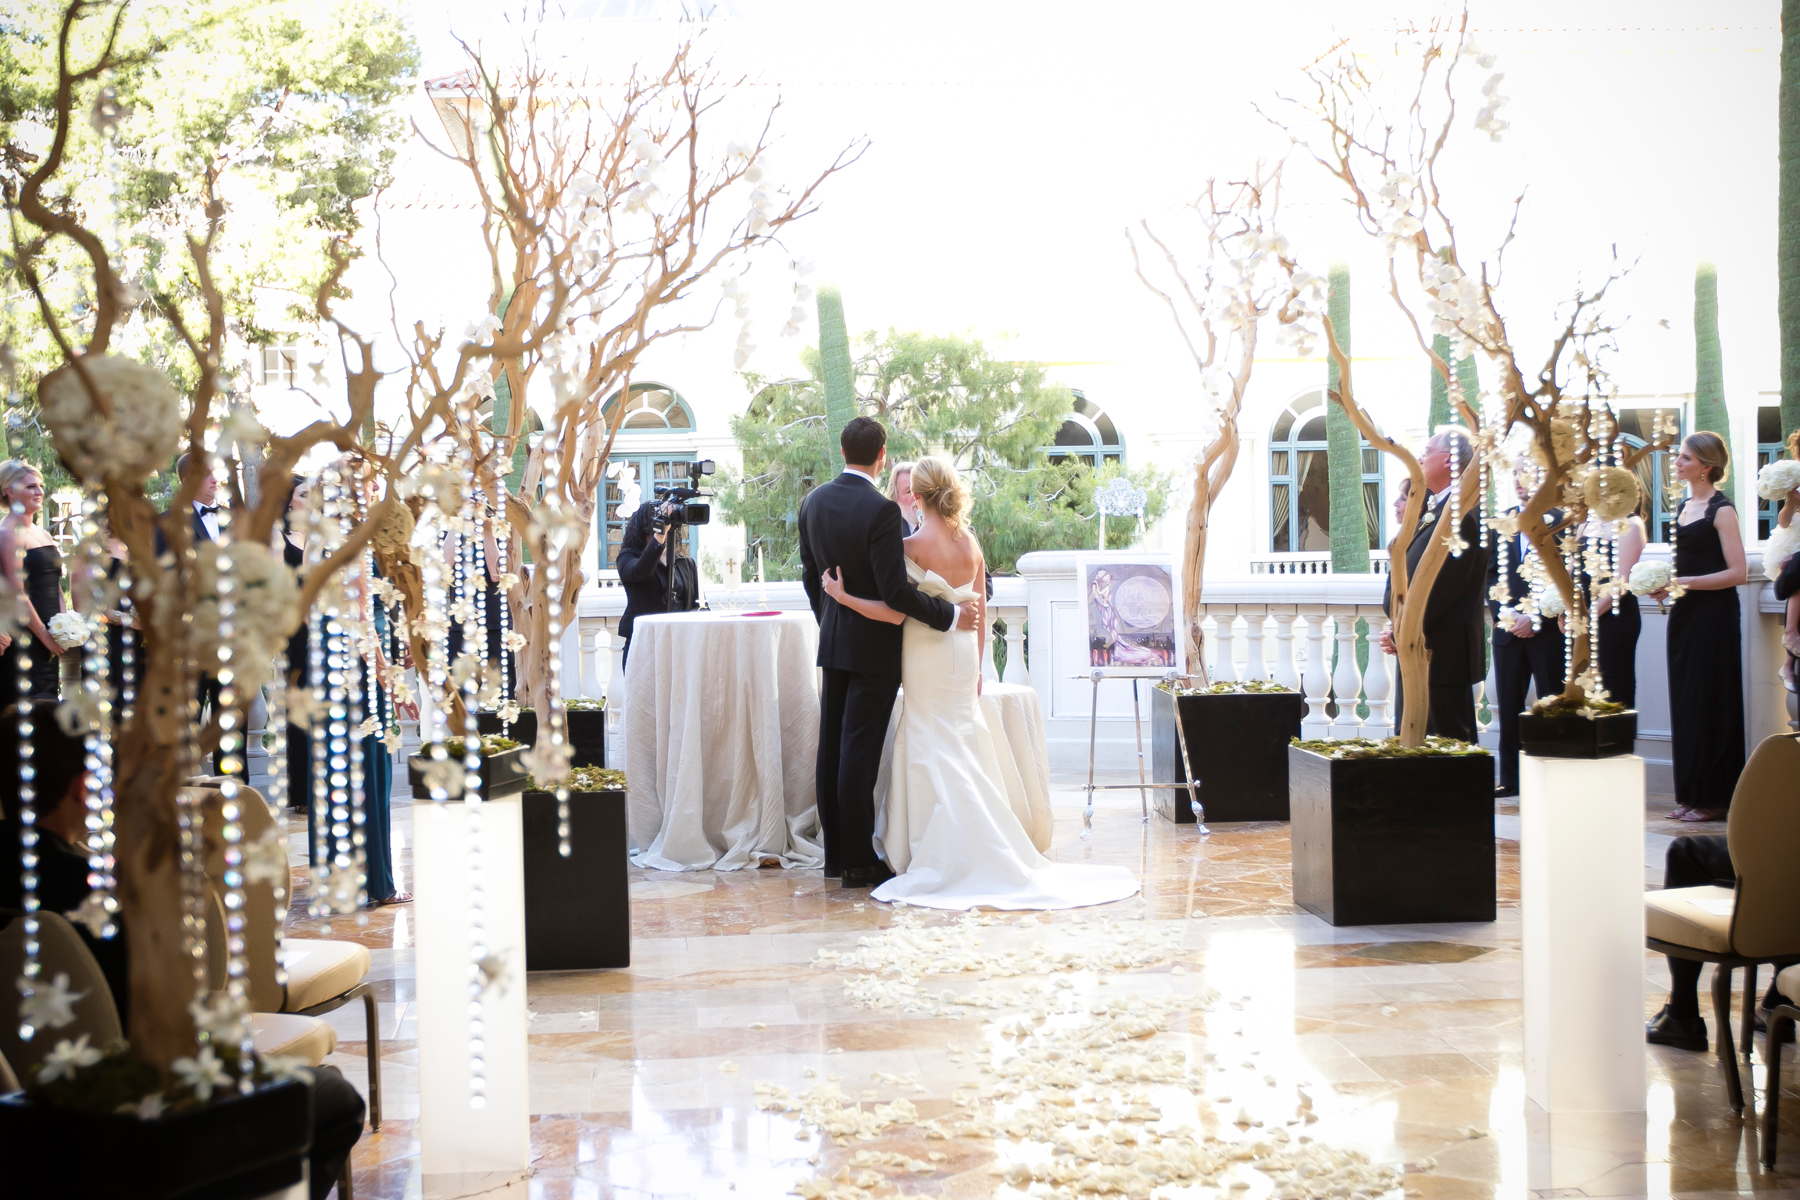 The bride and groom kept their arms around one another during the entire ceremony.  Wedding Venue: Bellagio Las Vegas.  Location: The Grand Patio. Flowers & Decor by Naakiti Floral . Photo by www.ronmiller.com . Las Vegas Wedding Planner: Andrea Eppolito Events .